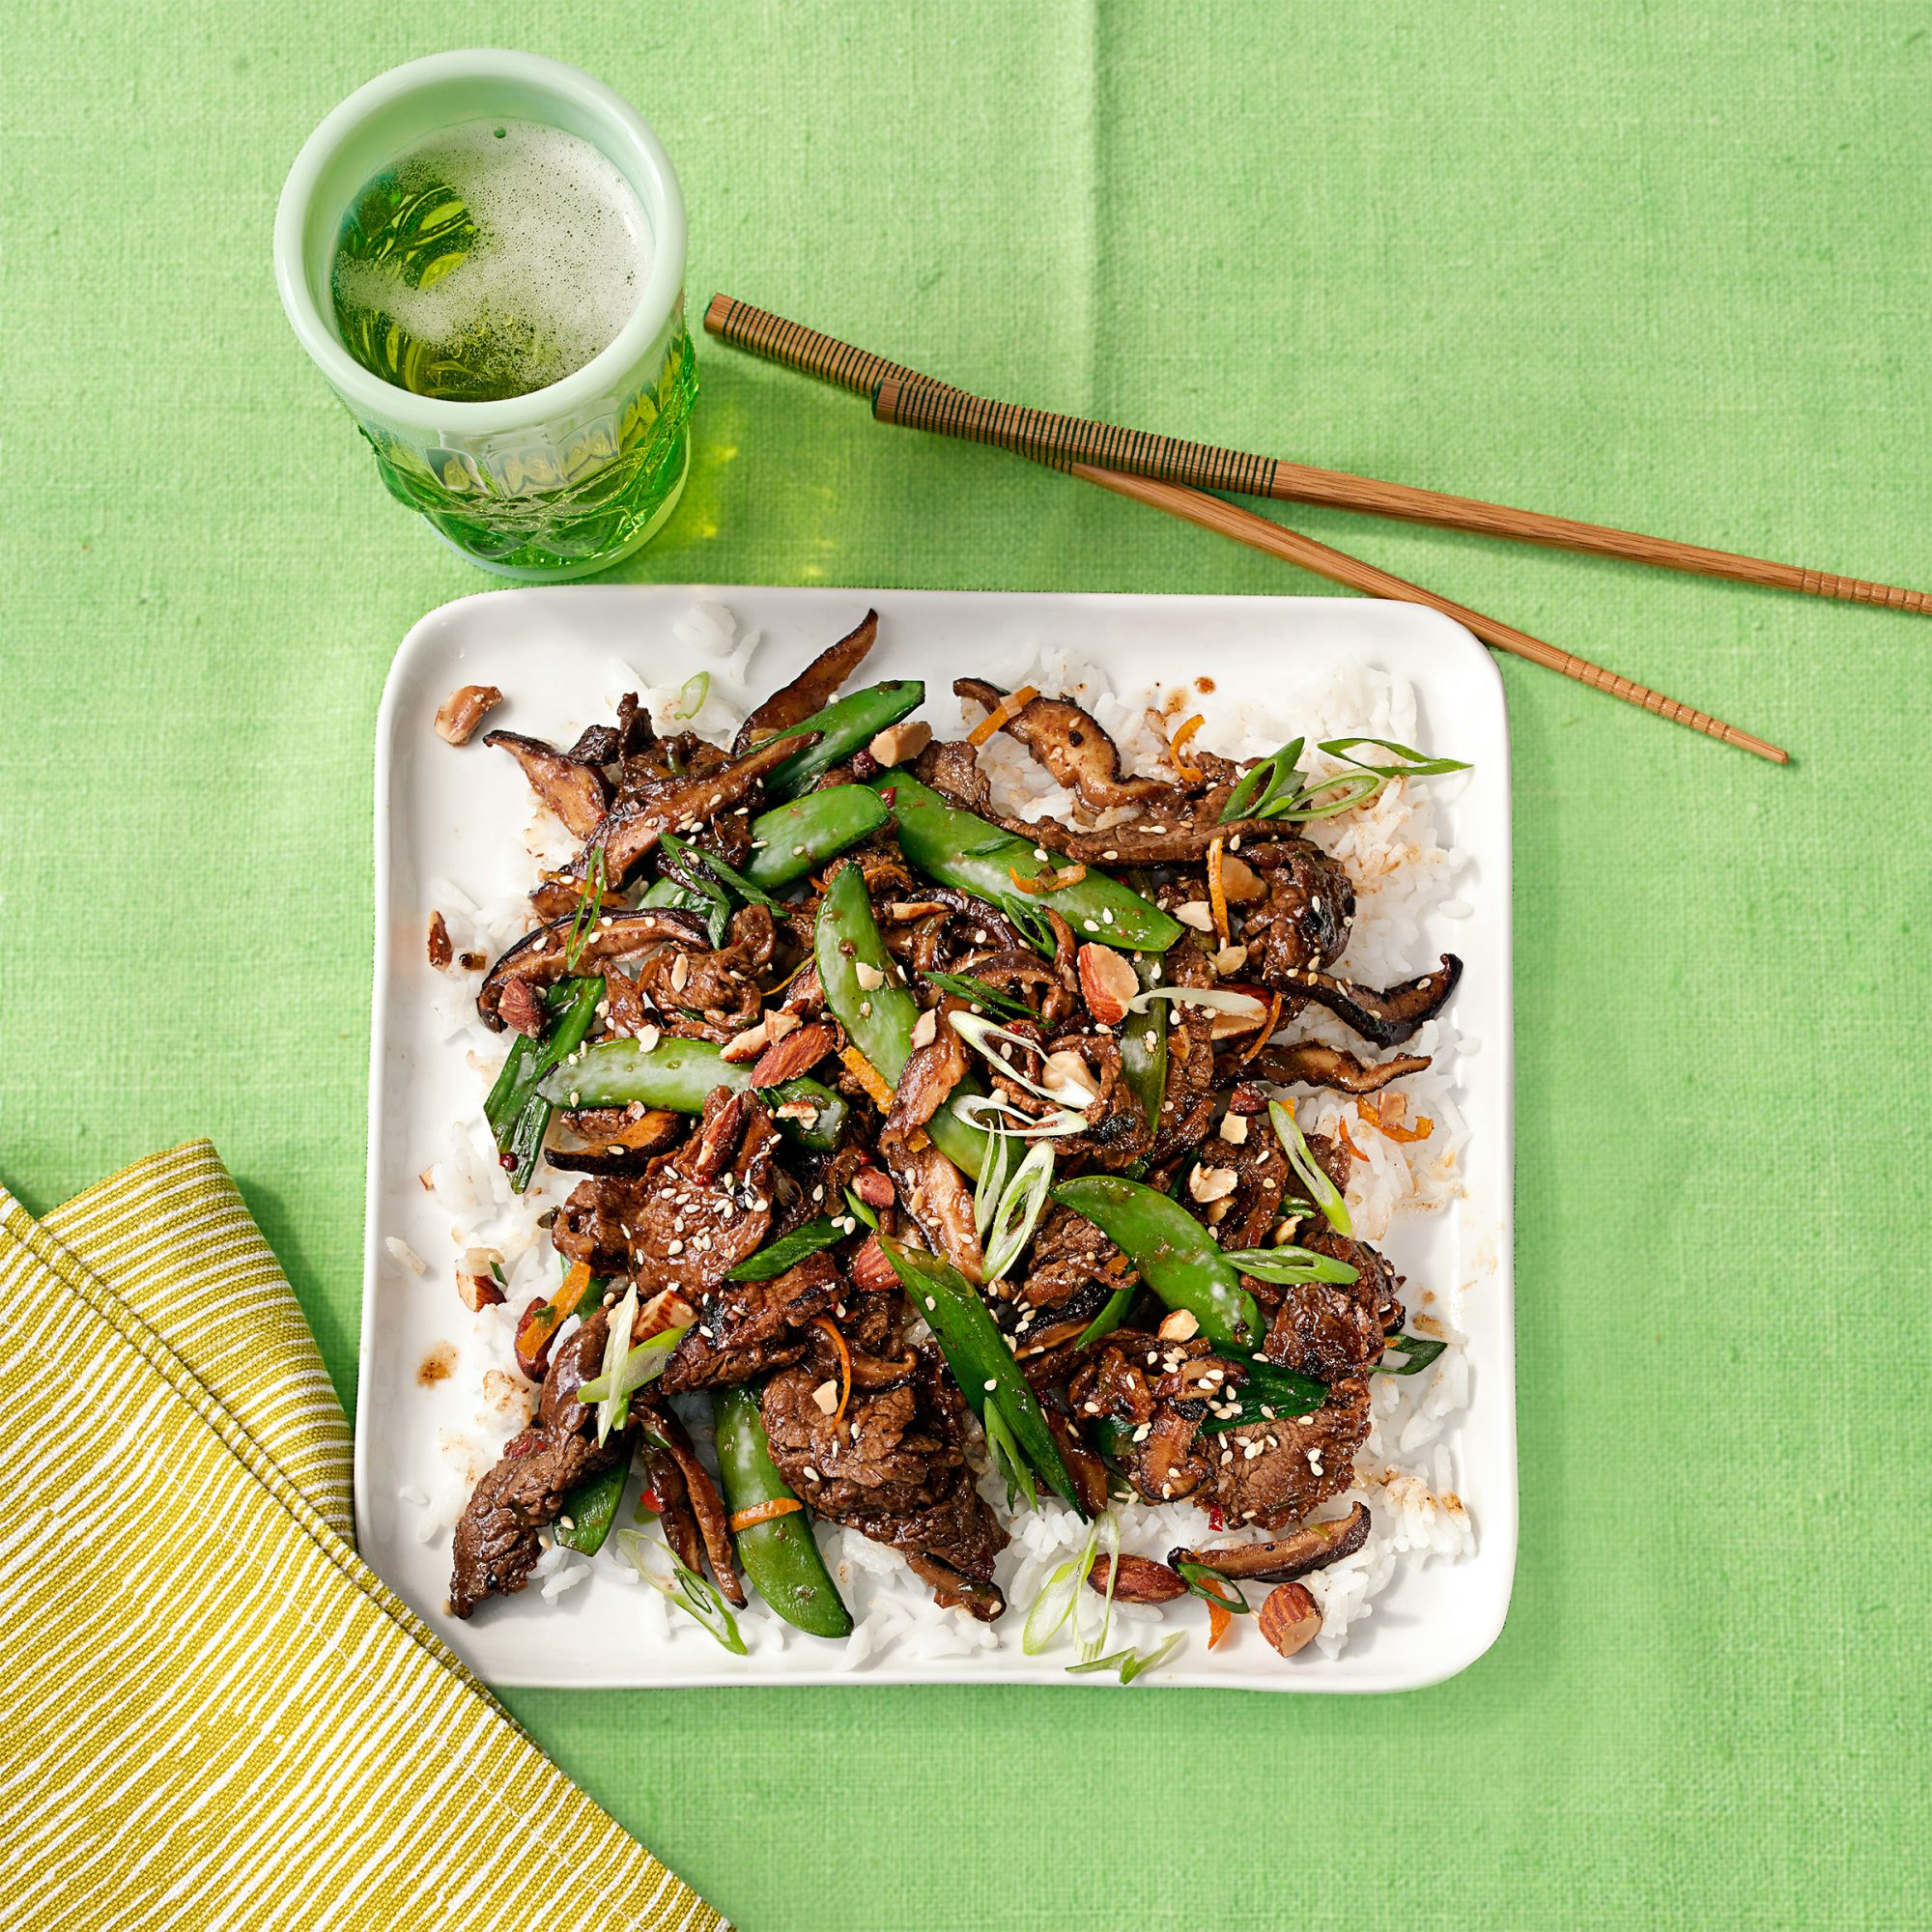 Tangerine Beef Stir Fry with Scallions, Chilies & Snap Peas